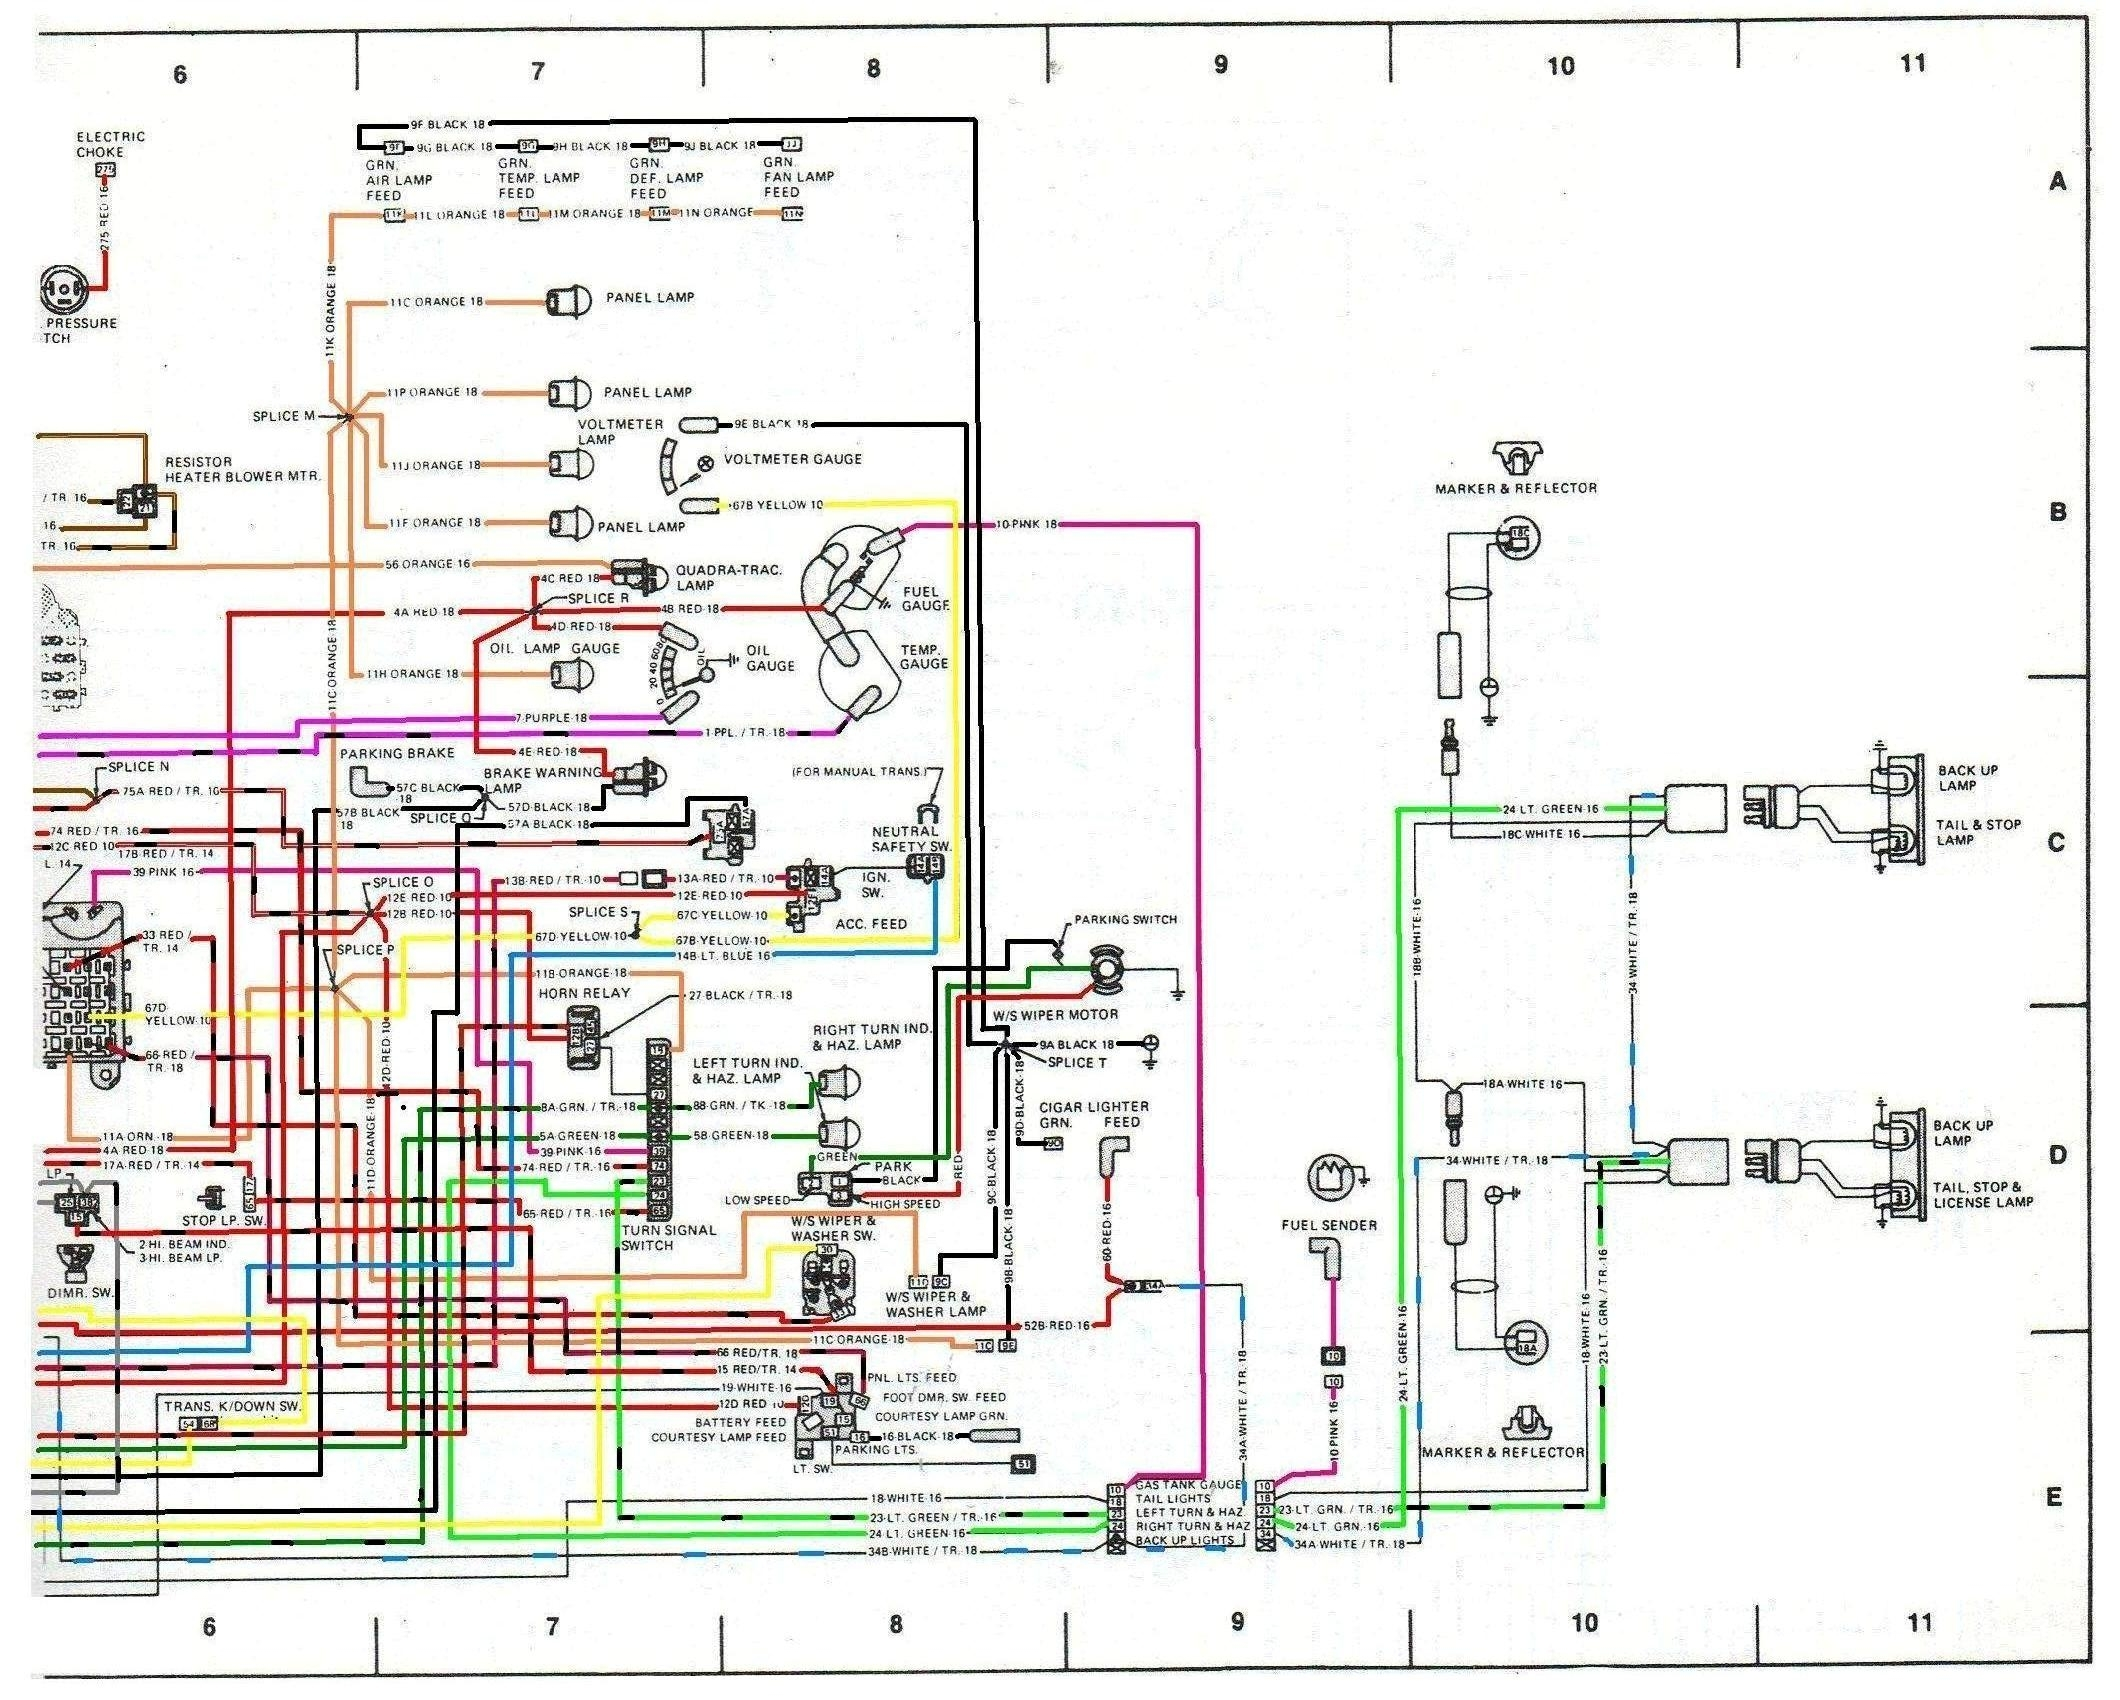 Wiring Diagram For Cj8 Wiring Diagrams Wni